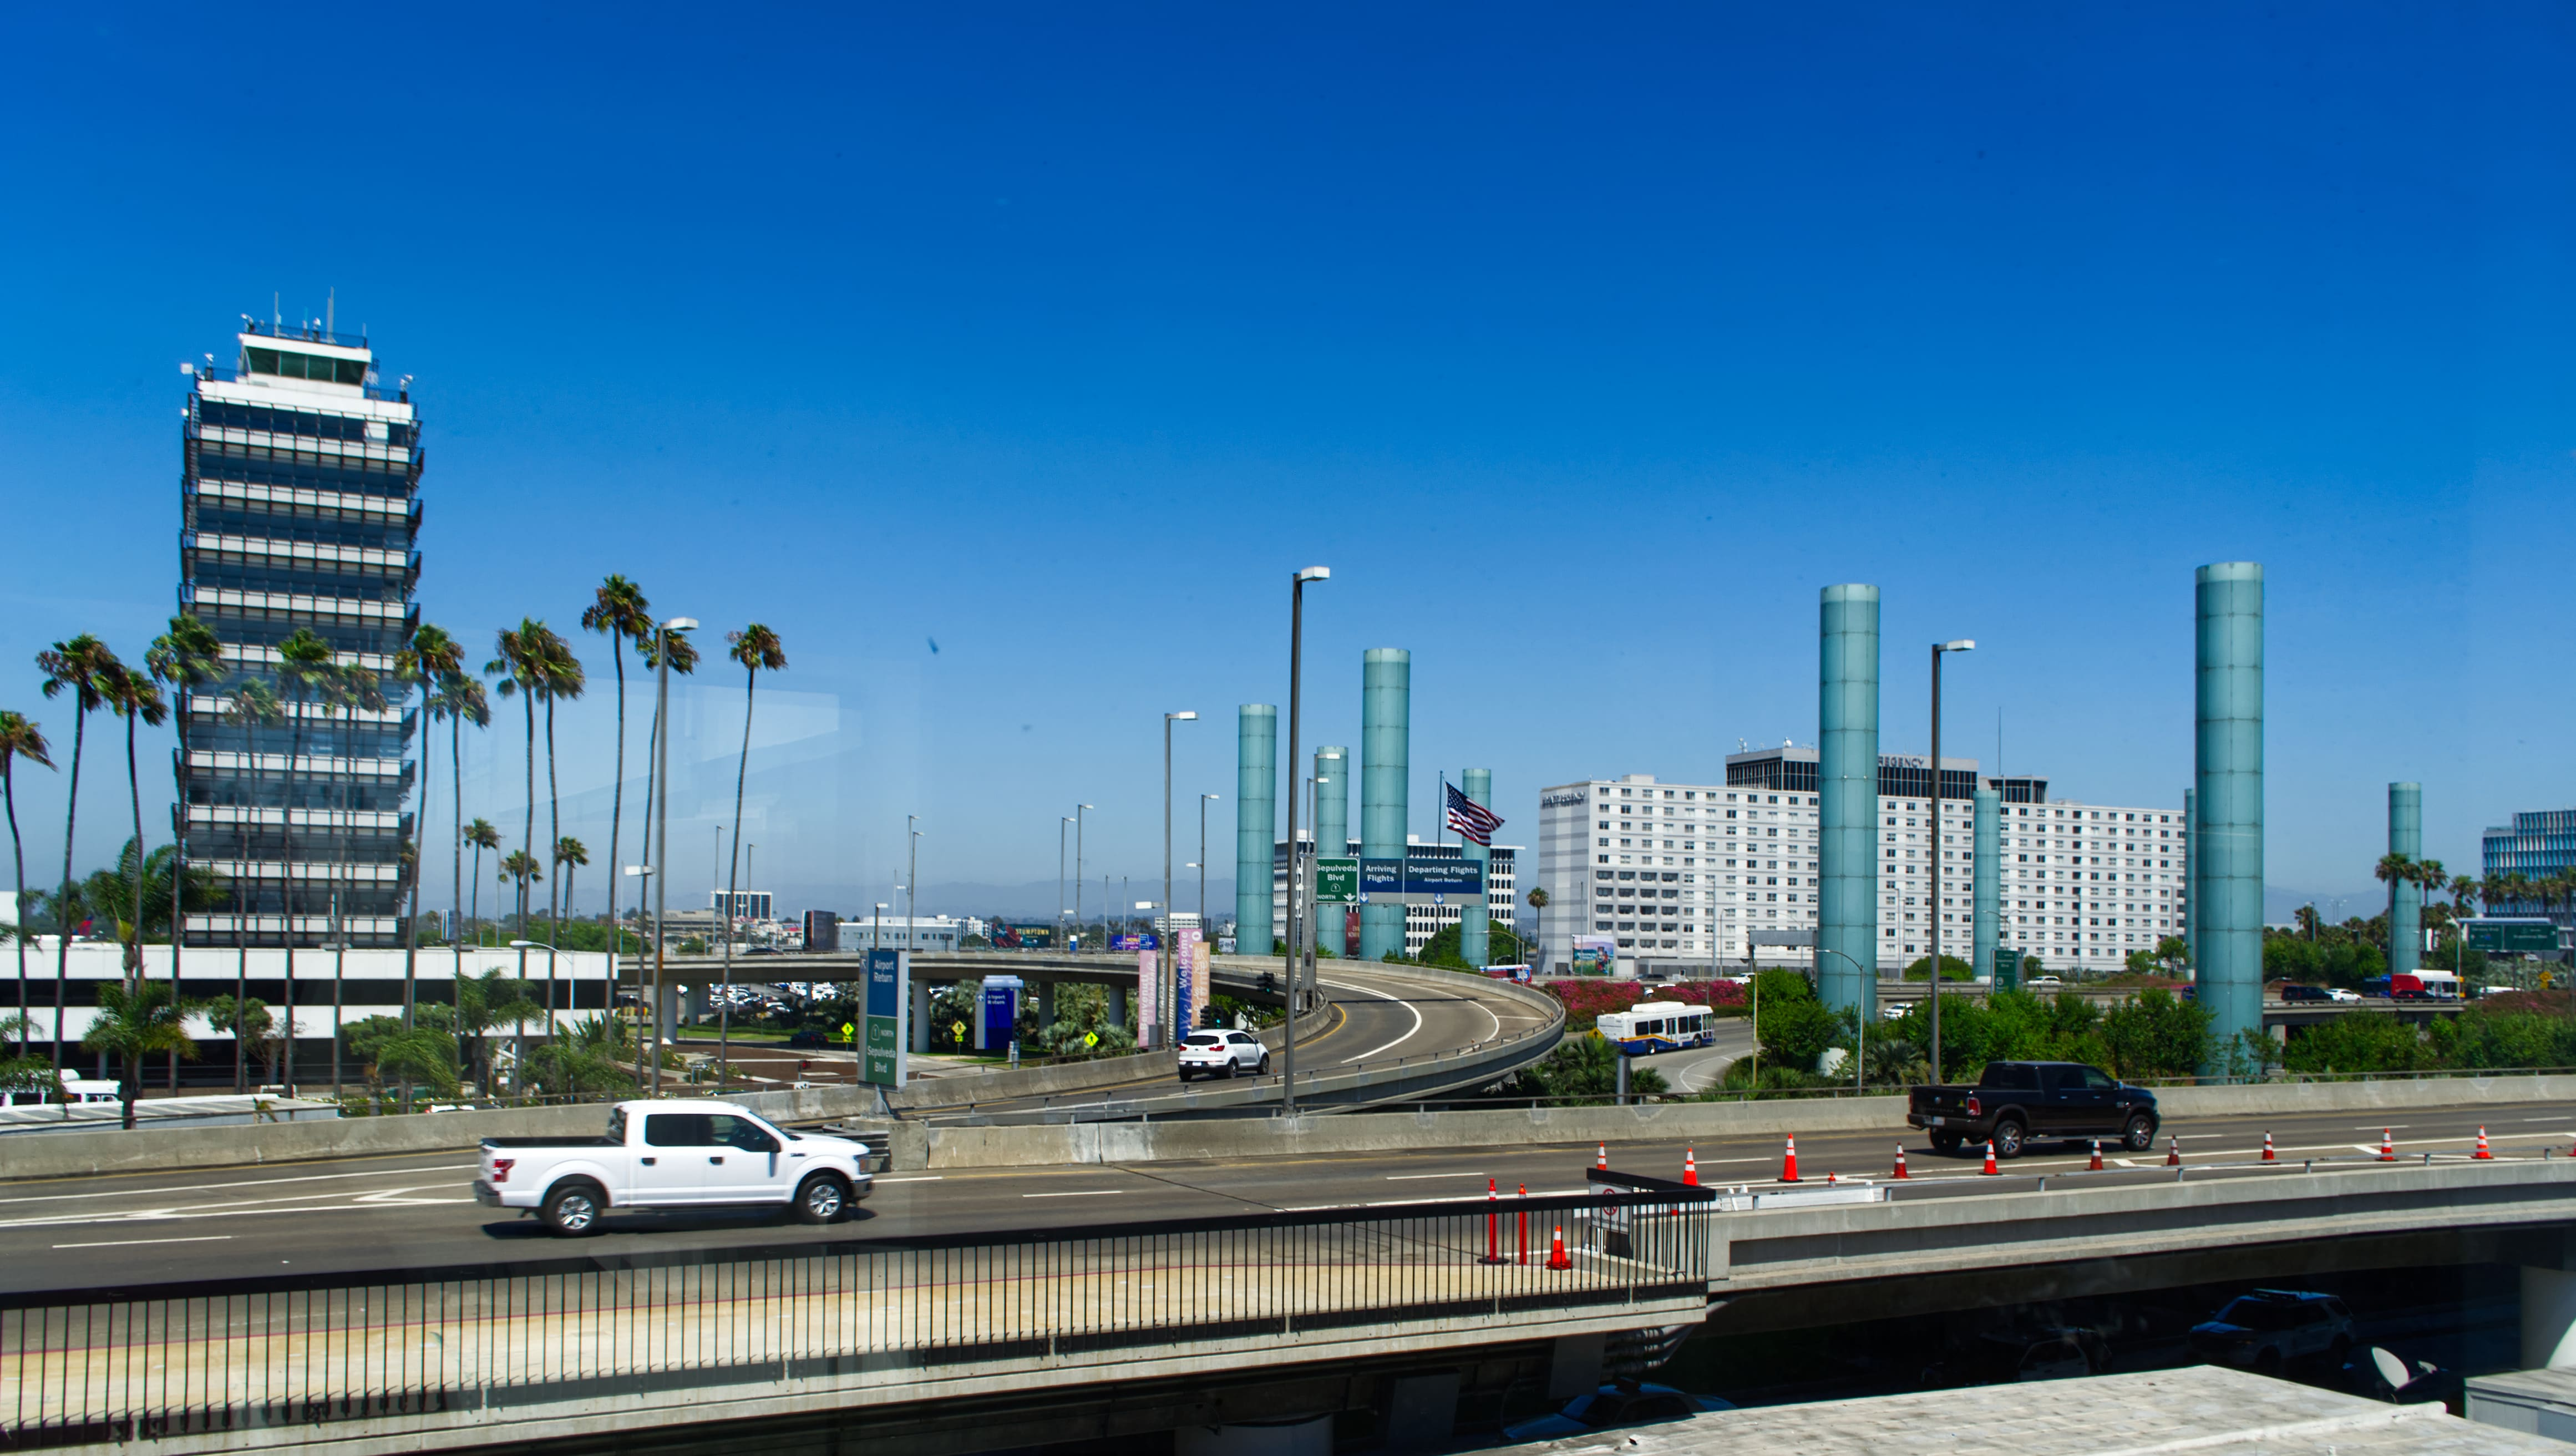 View over the highway entrance to Los Angeles International Airport